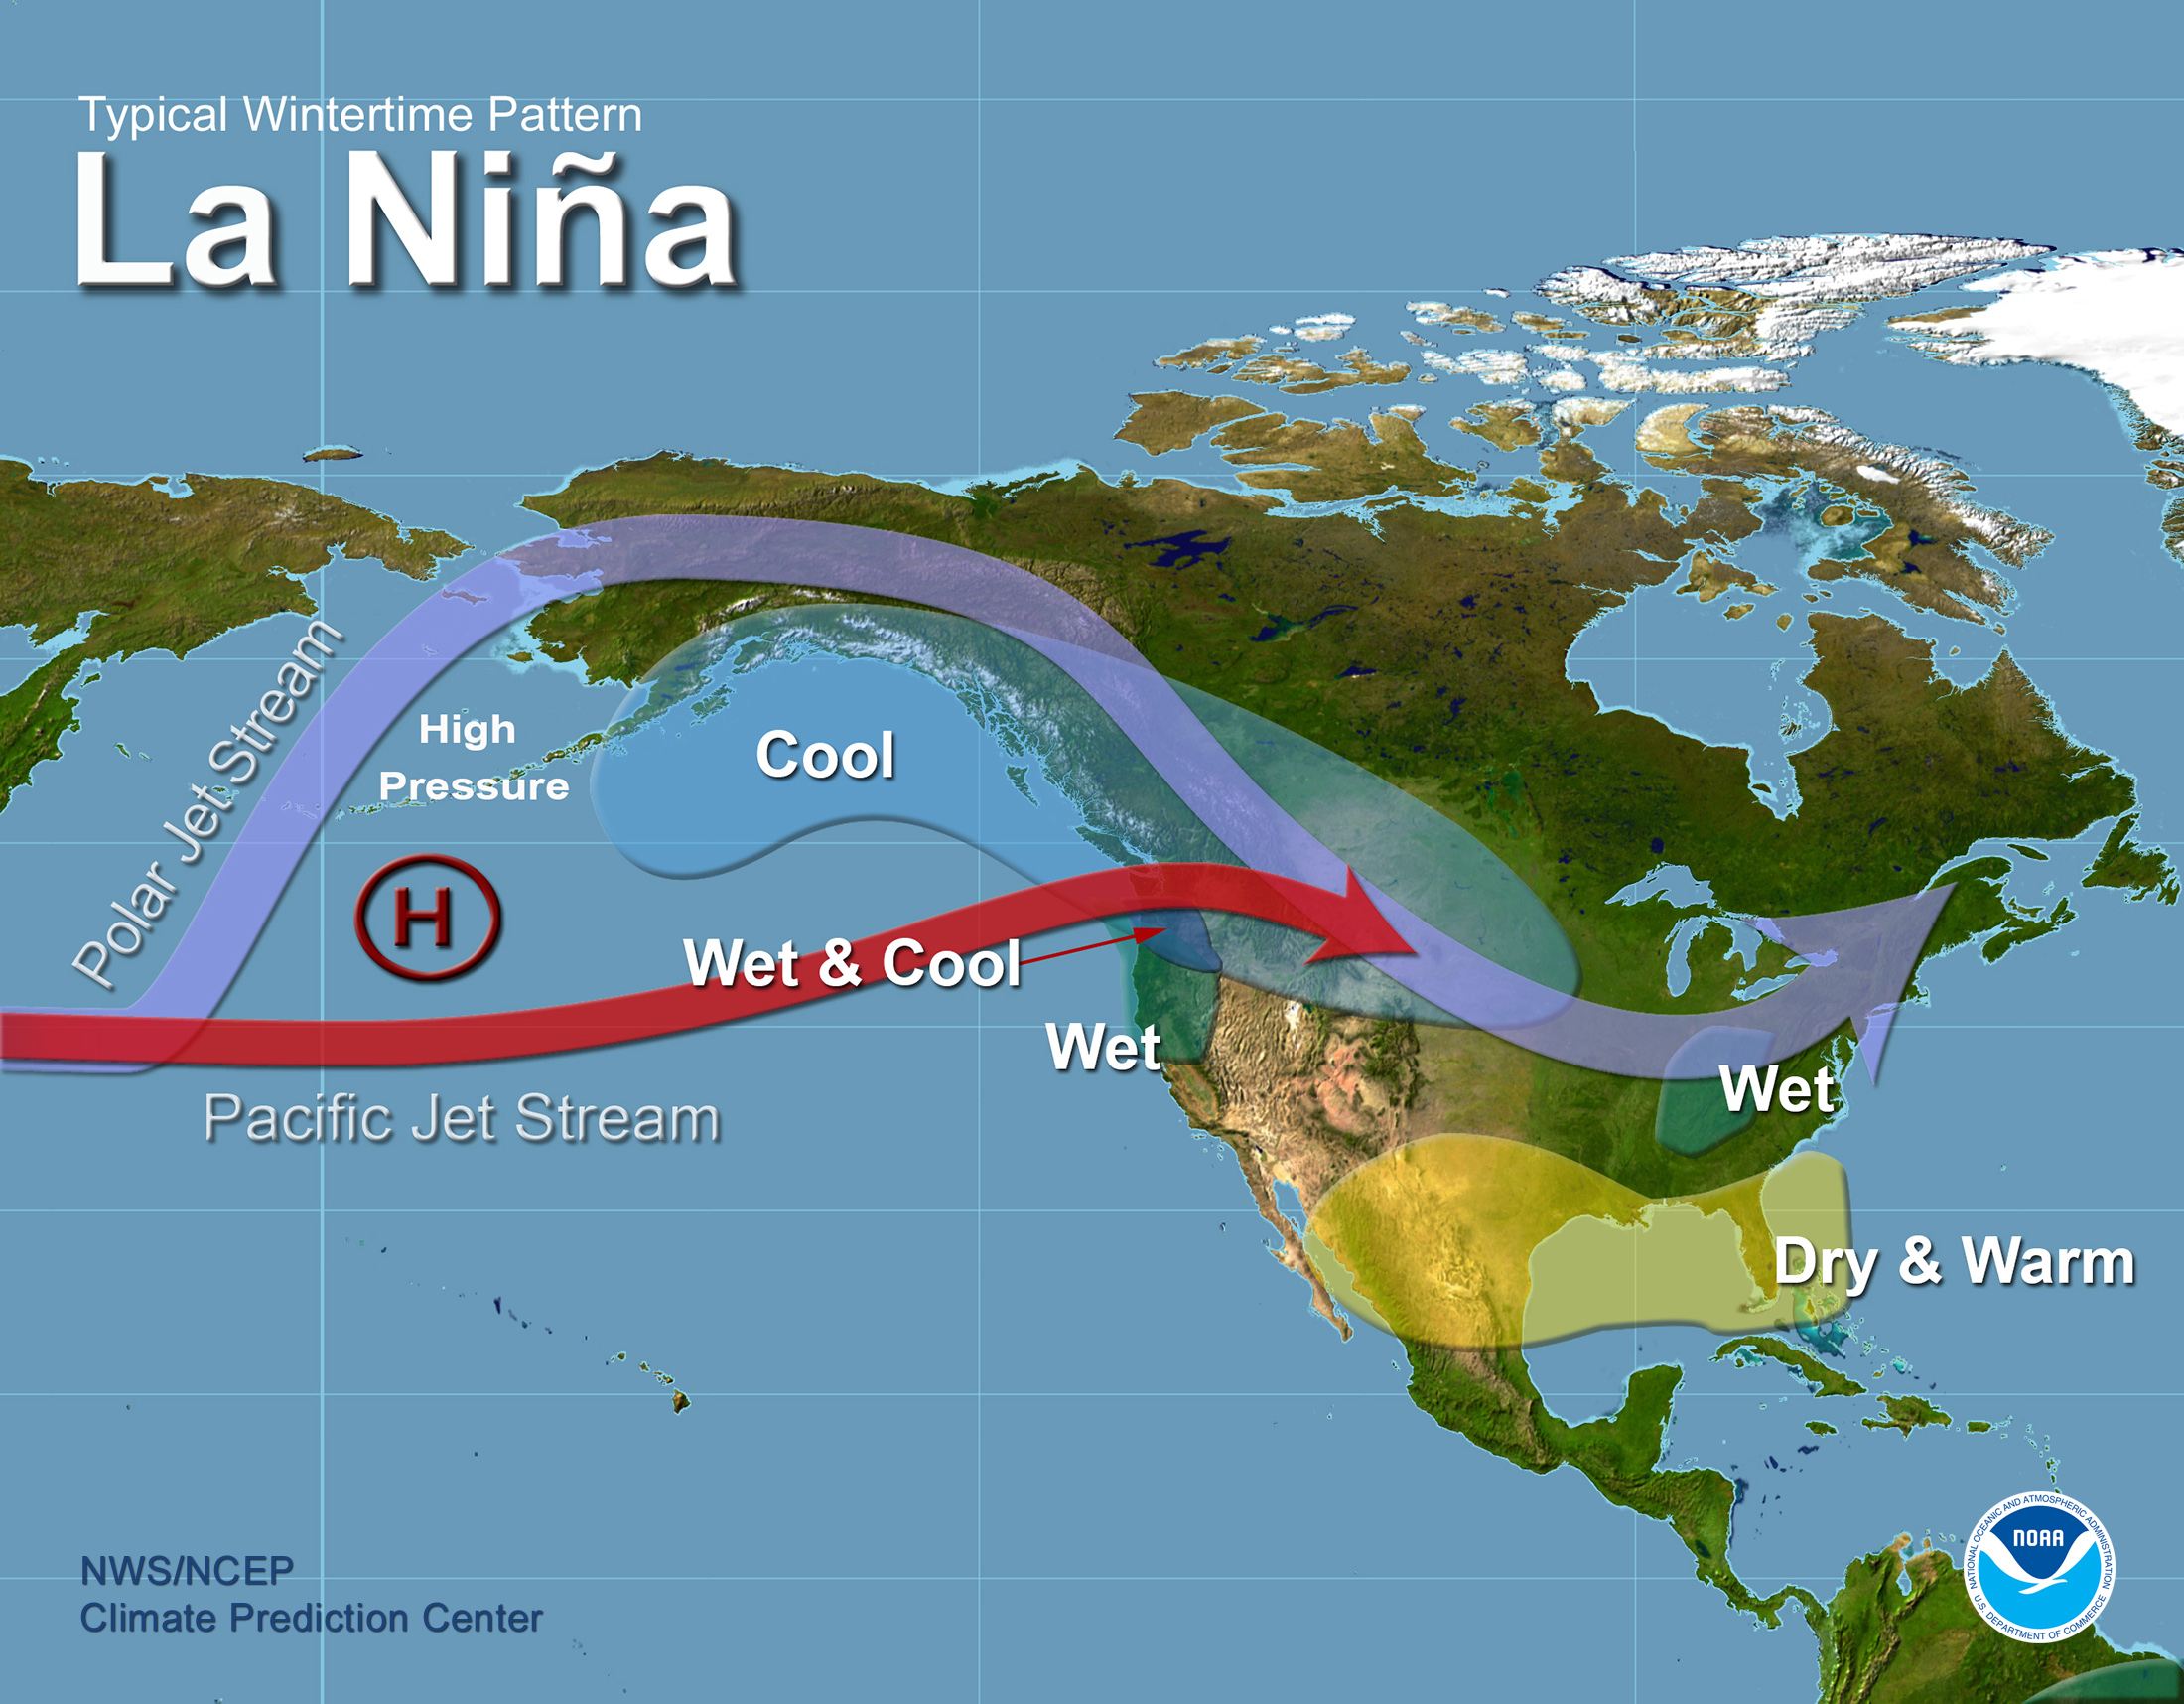 la ni ntilde a faqs el nino theme page a comprehensive resource lanina jet wintertime pattern elnino jet wintertime pattern